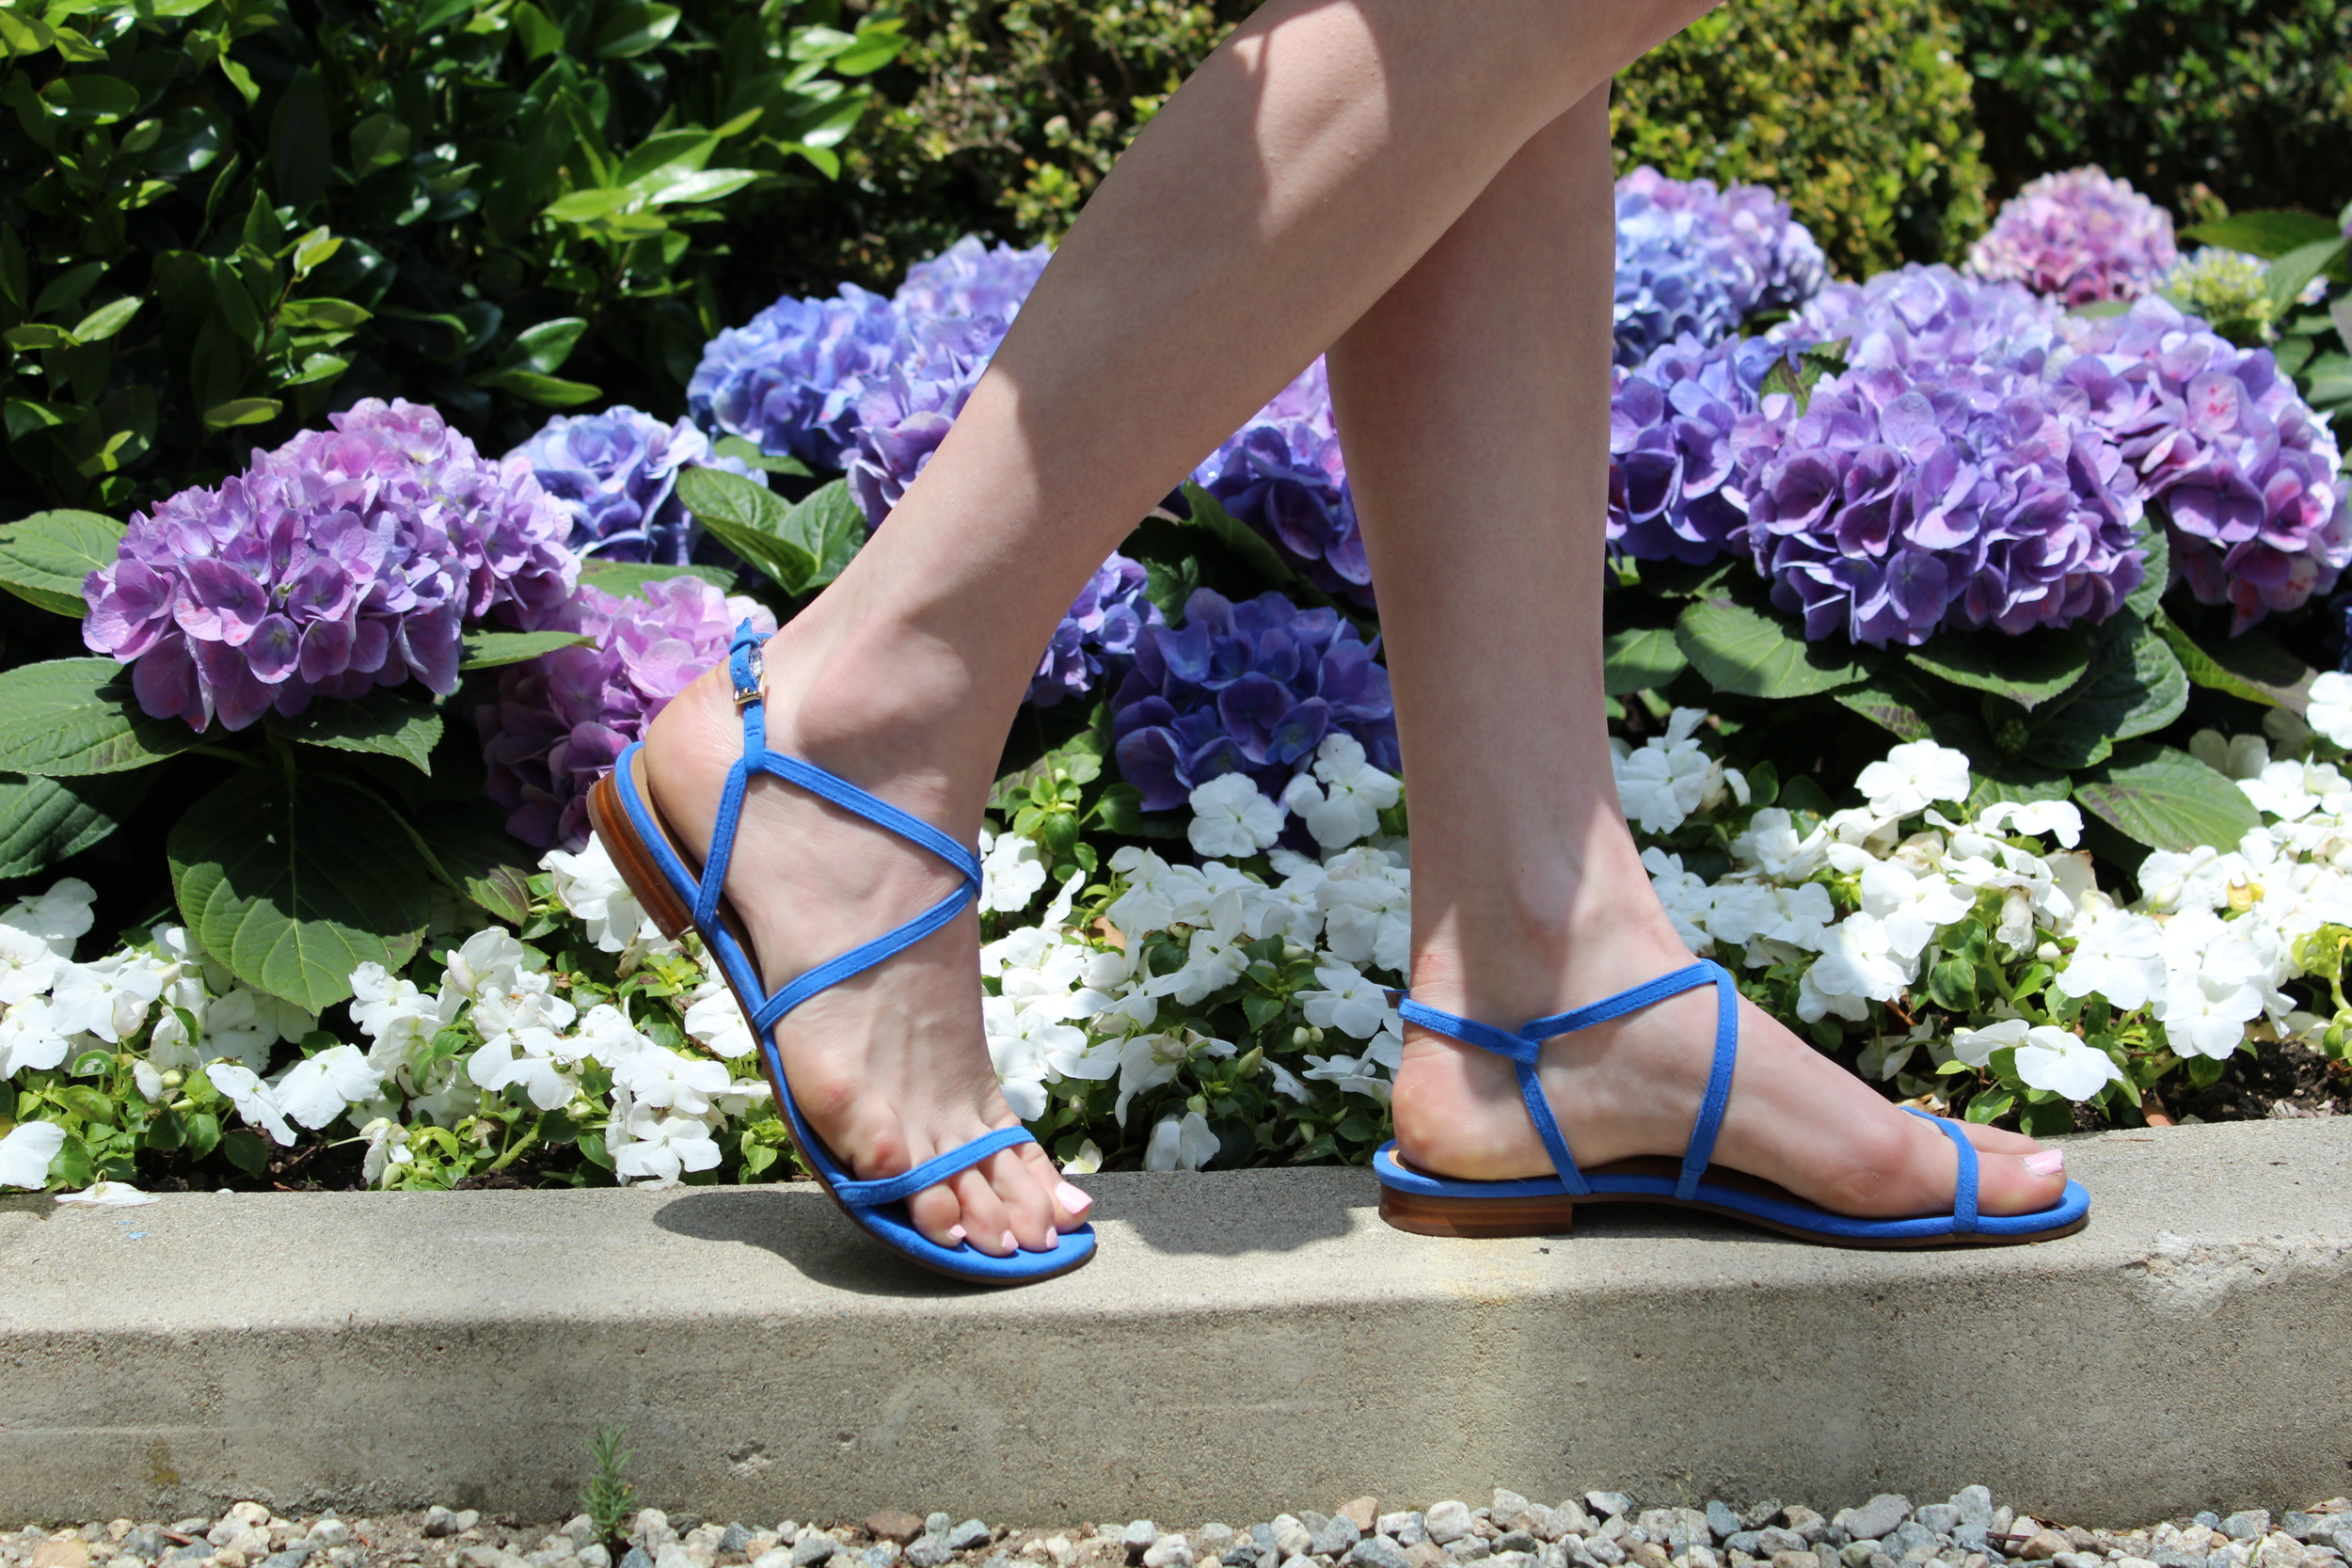 These are definitely my new go to sandals. They are super cute and comfy but more than anything it is the color that gets me. I also like that they are strappy which makes them feel a little more dressy than just your basic sandal.